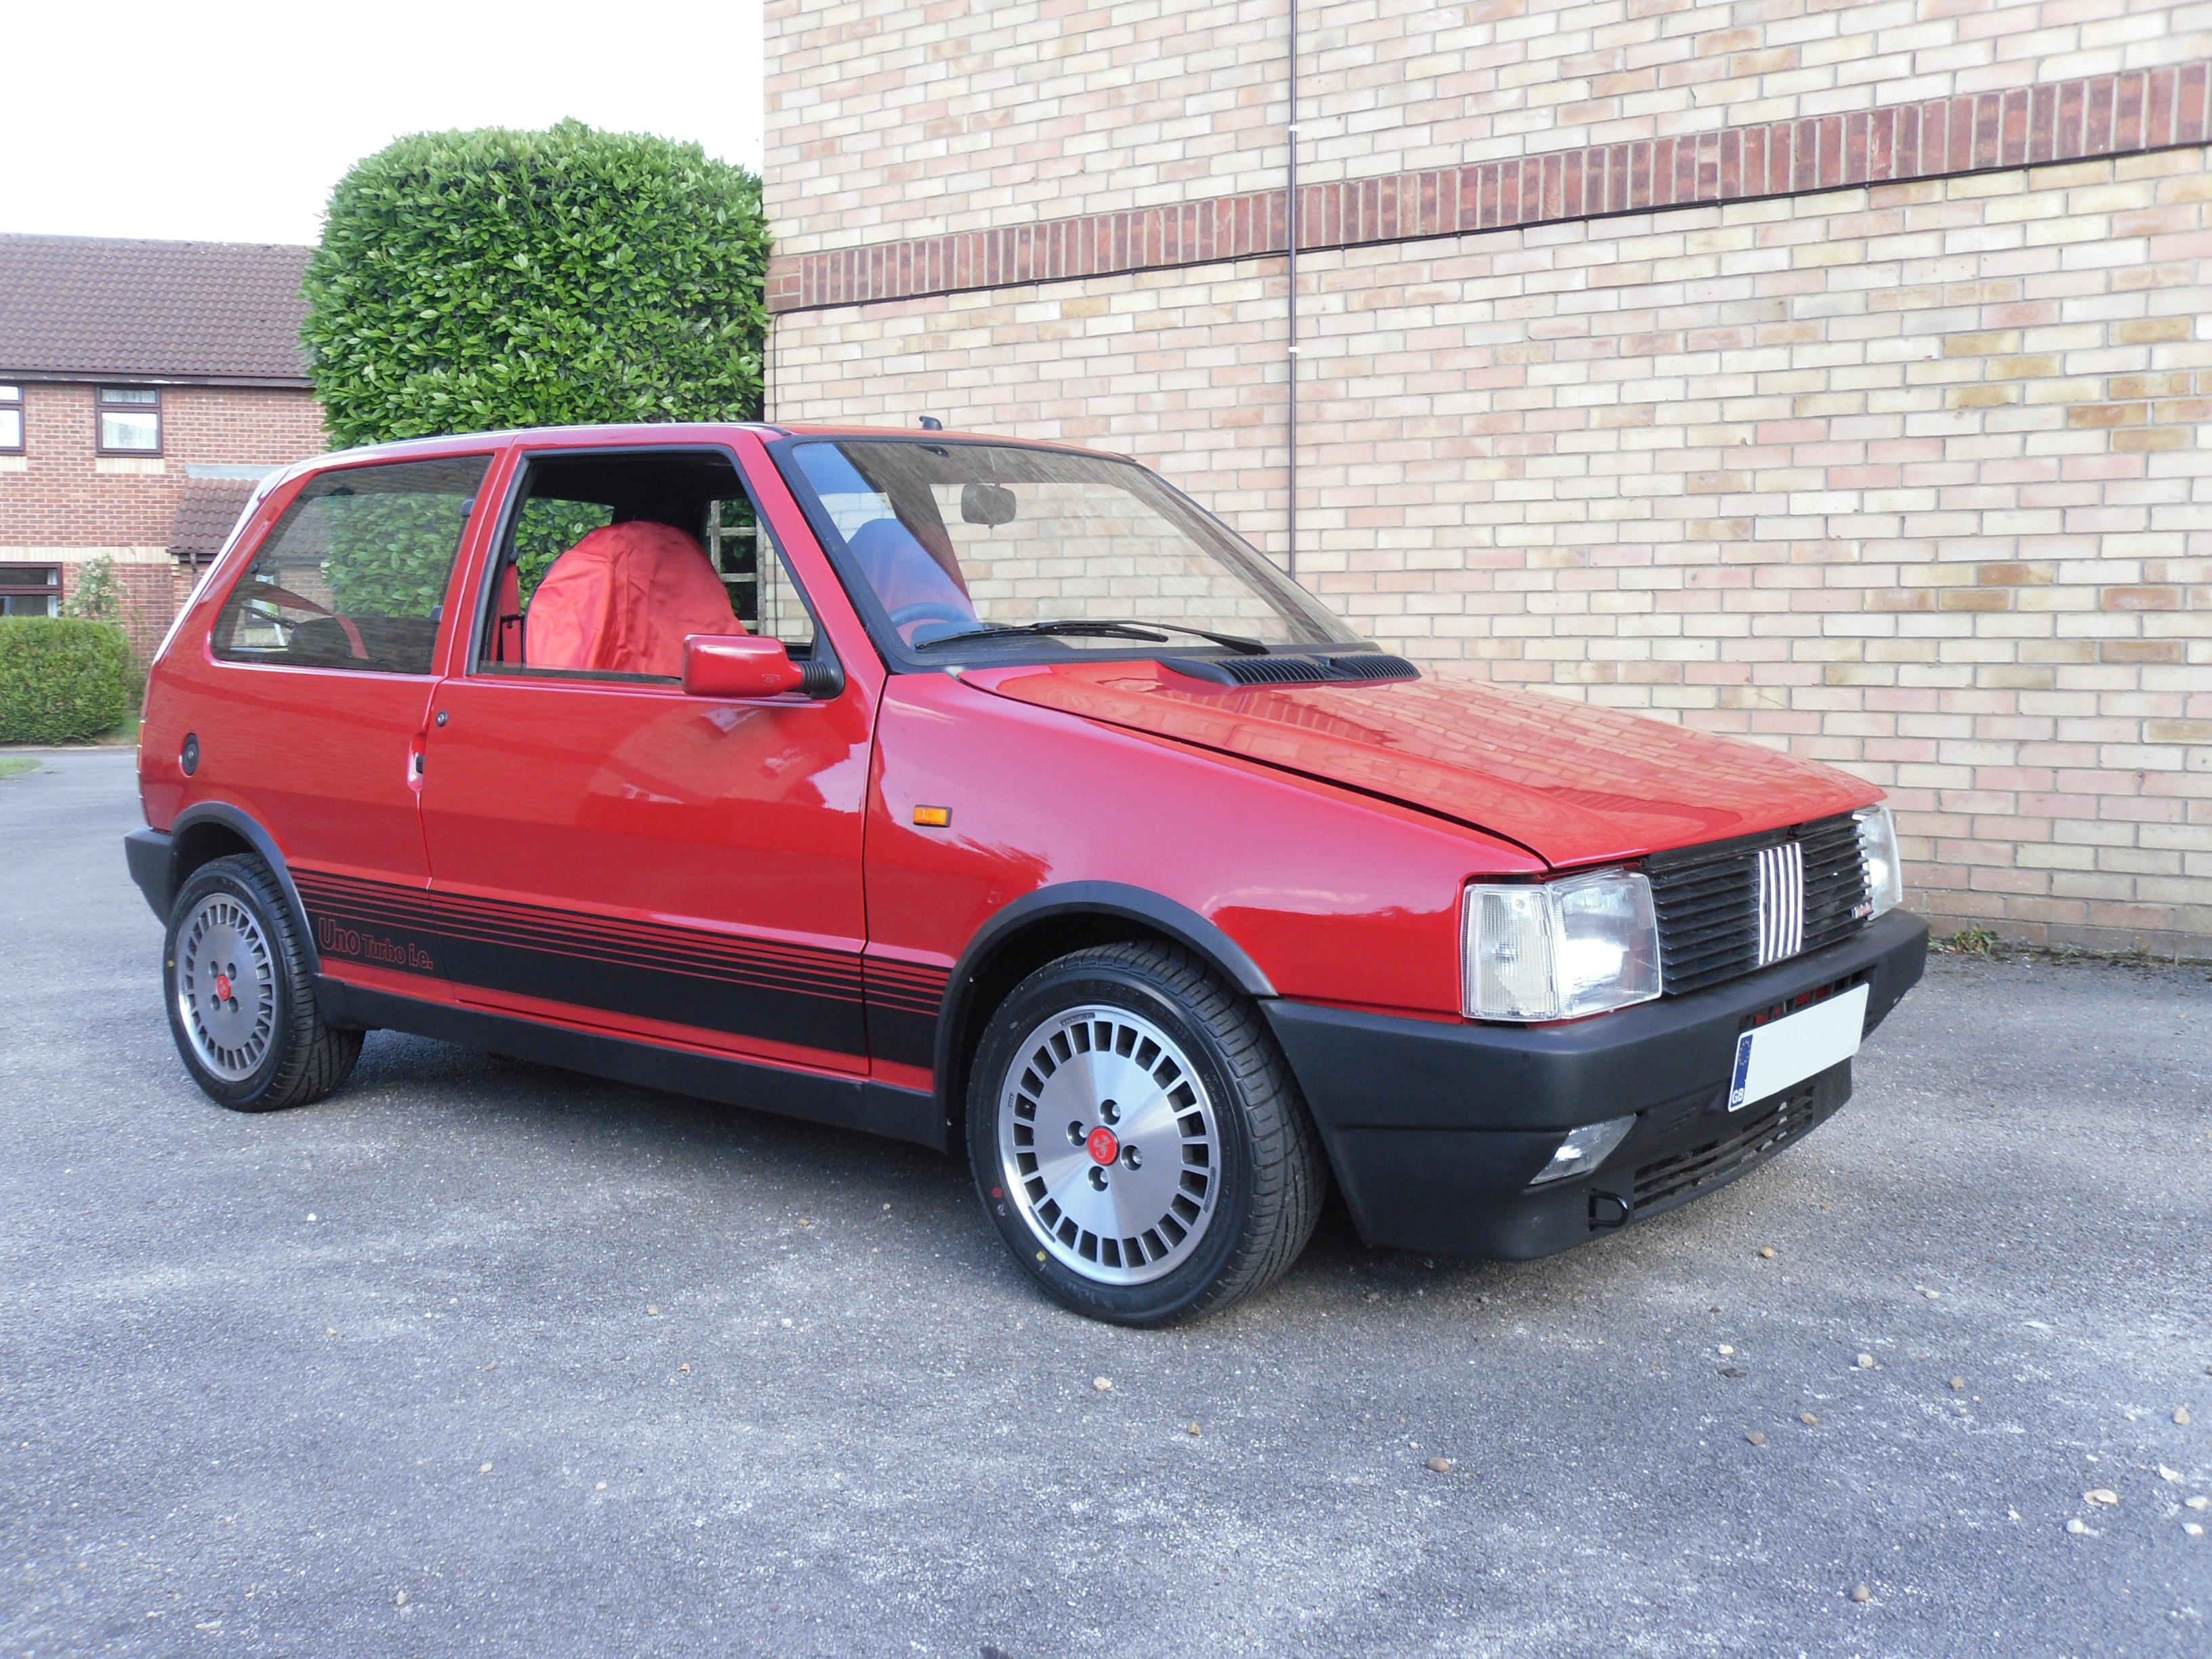 Fiat Uno I Restyling 1989 - 2002 Hatchback 3 door #3